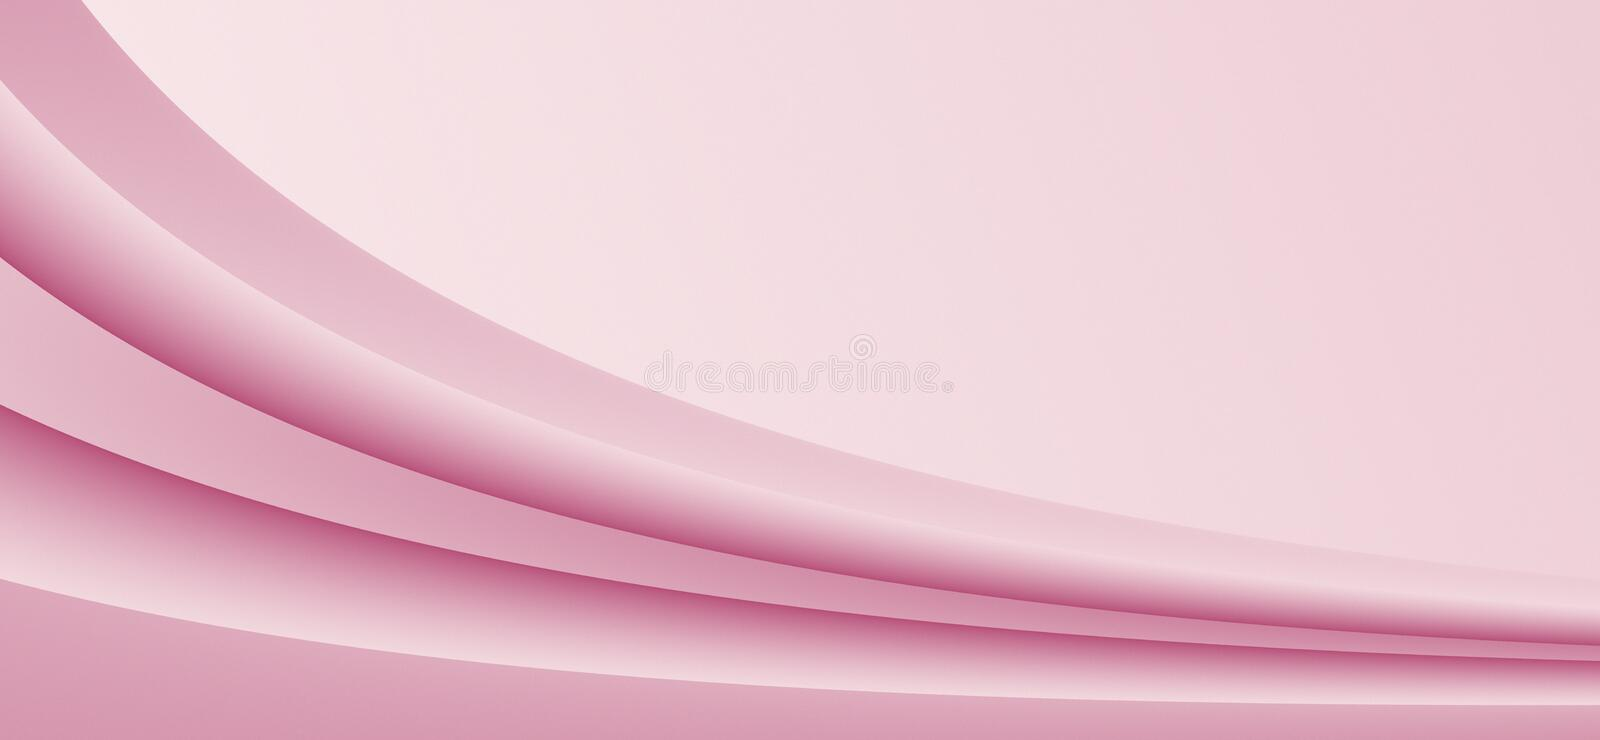 Shades of soft pink diagonal sloping curves abstract paper background with copy space vector illustration